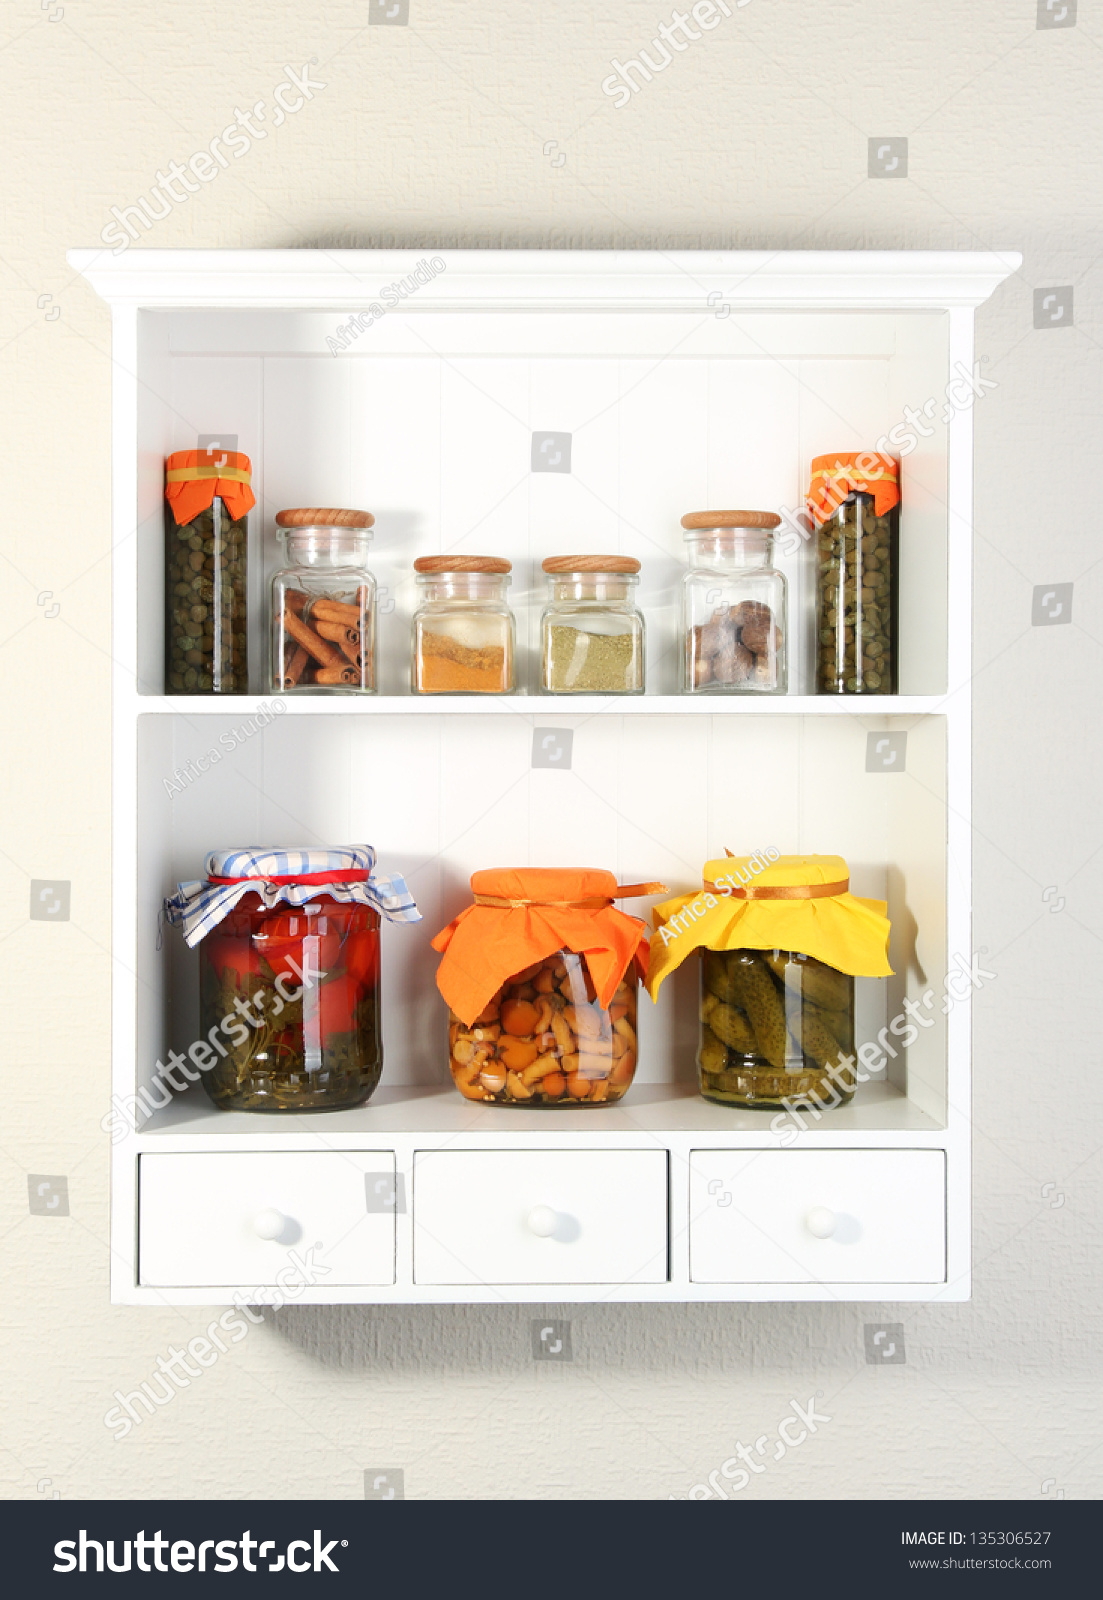 Homemade preserves and some spices on beautiful white for Beautiful shelves images